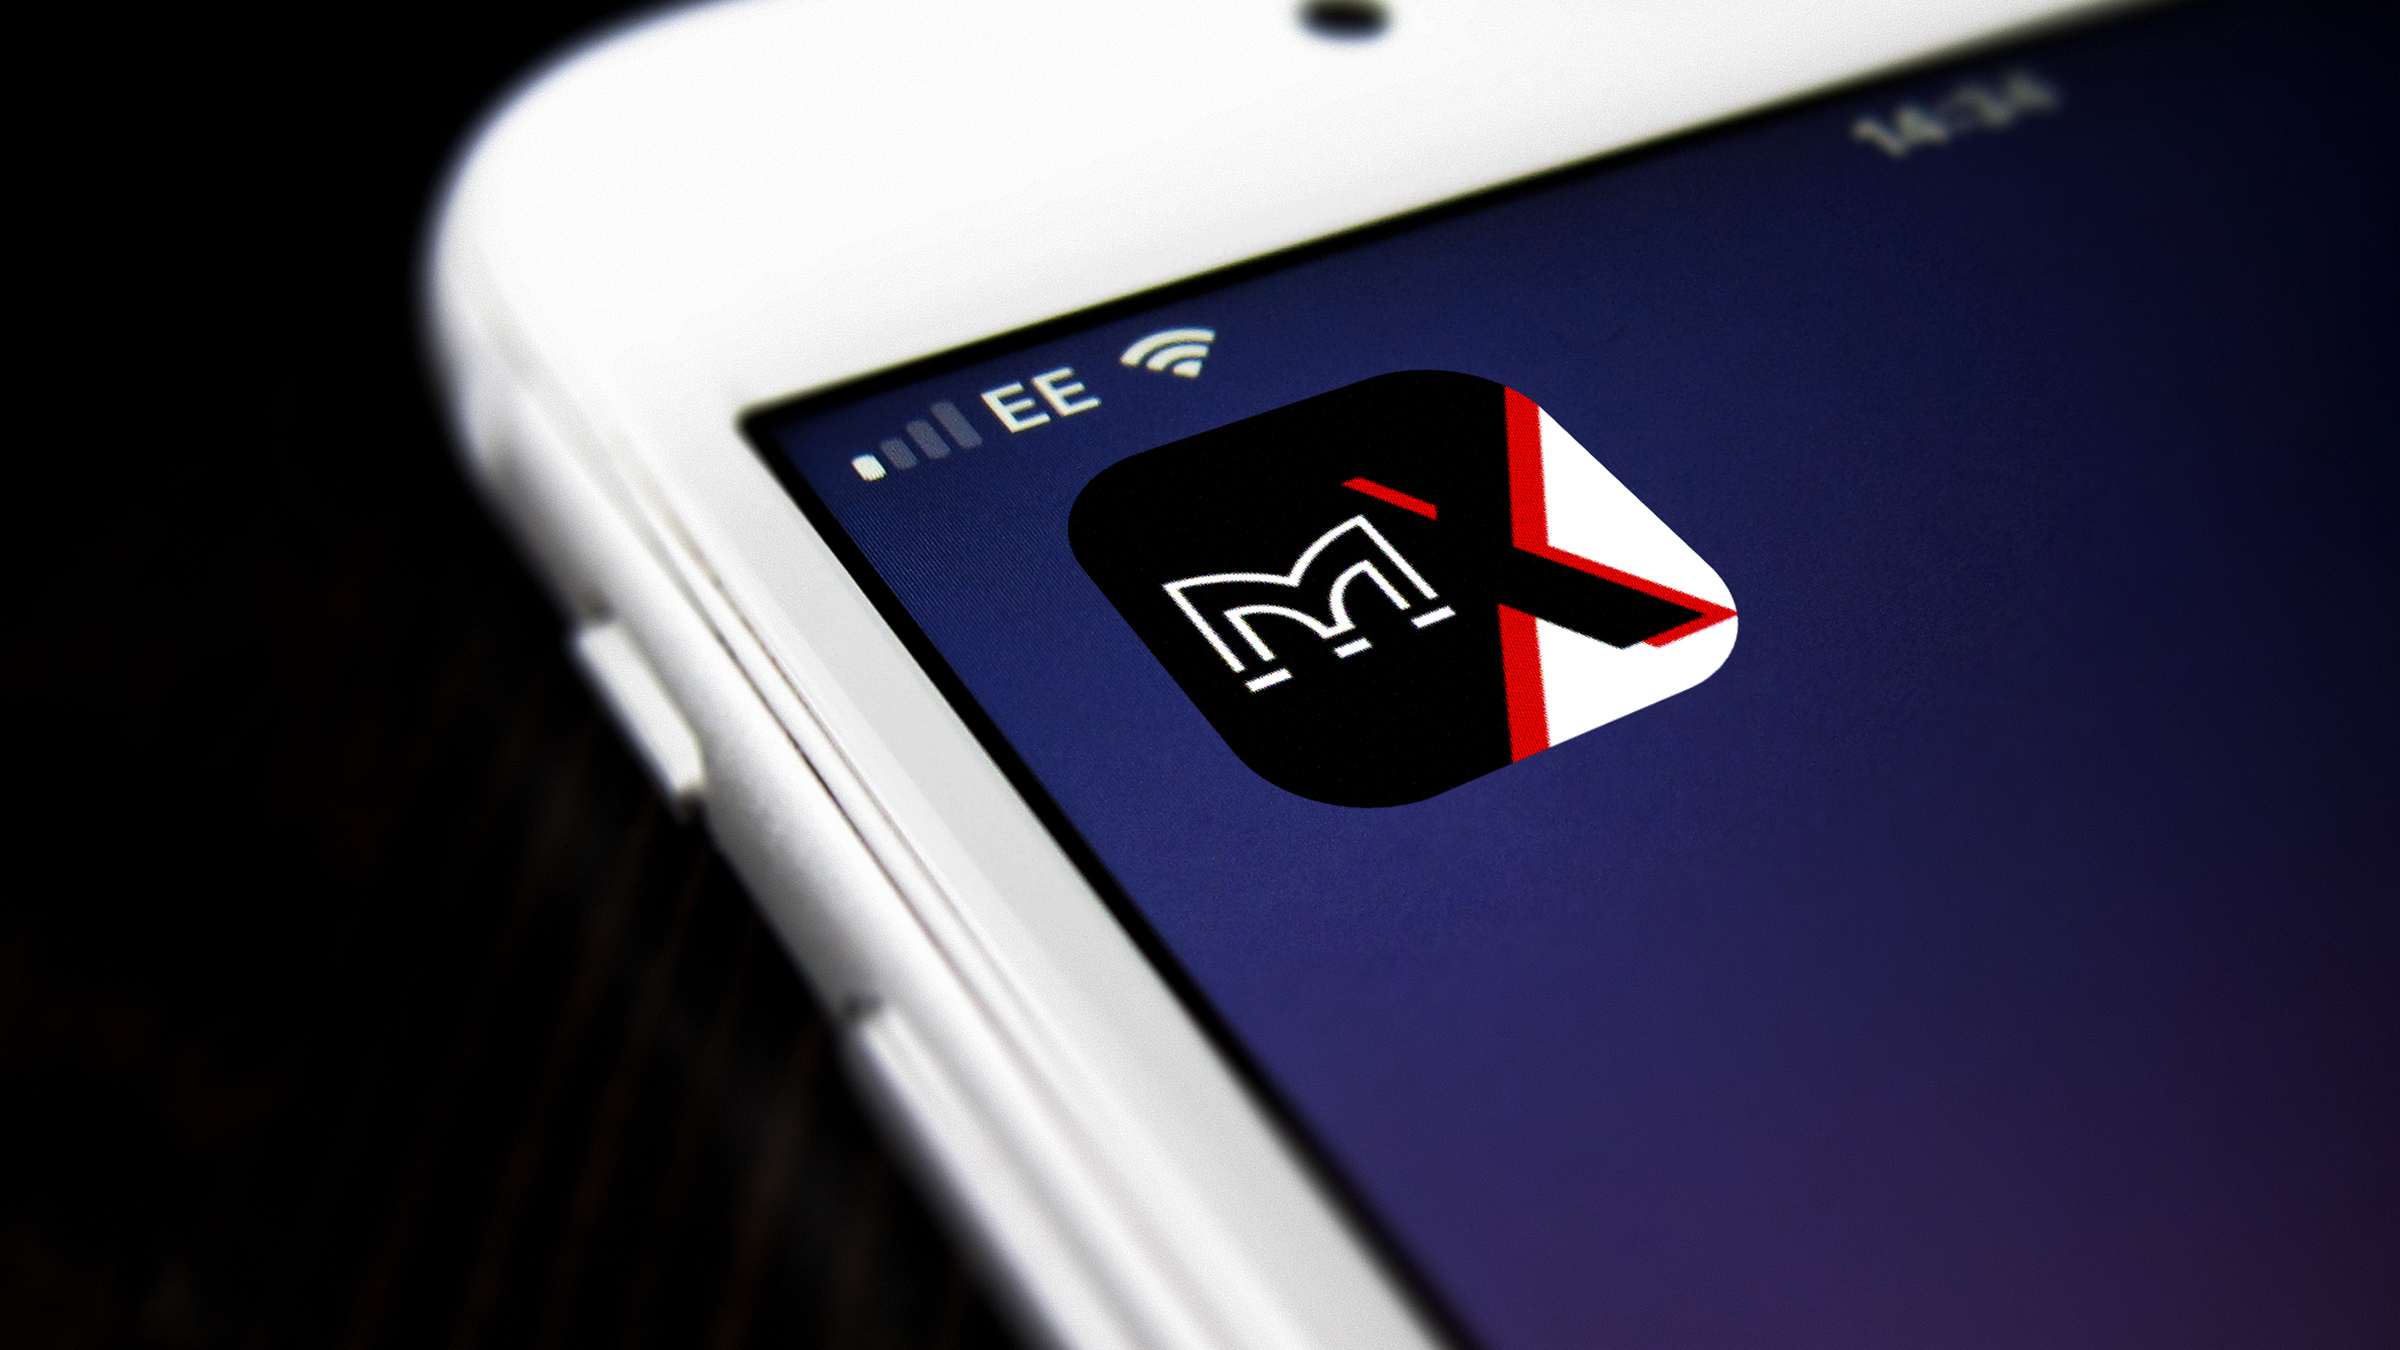 The app was engineered by Culann Mac Cabe from our past audio design client, Rocudo in his new venture segotia.xyz